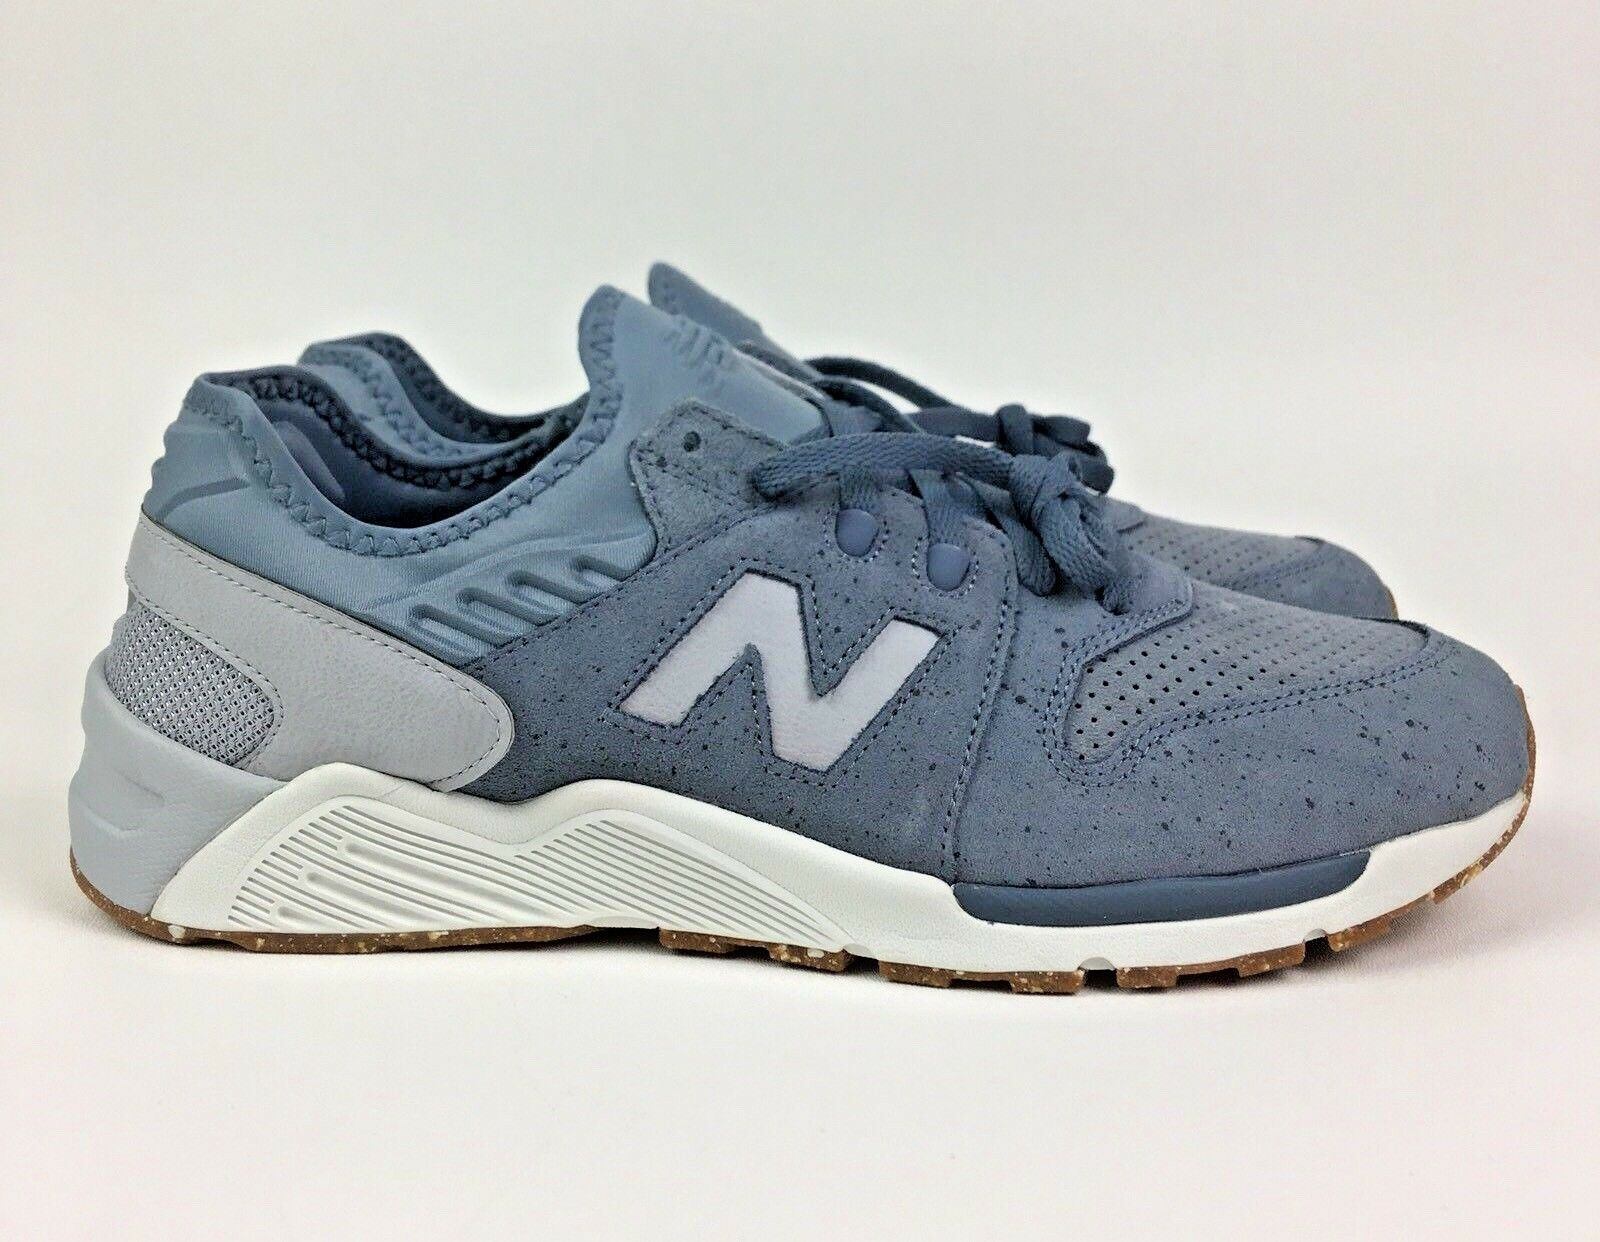 New Balance 009 Speckle Suede shoes bluee Silver ML009PB D Speckle Size 11.5 NEW